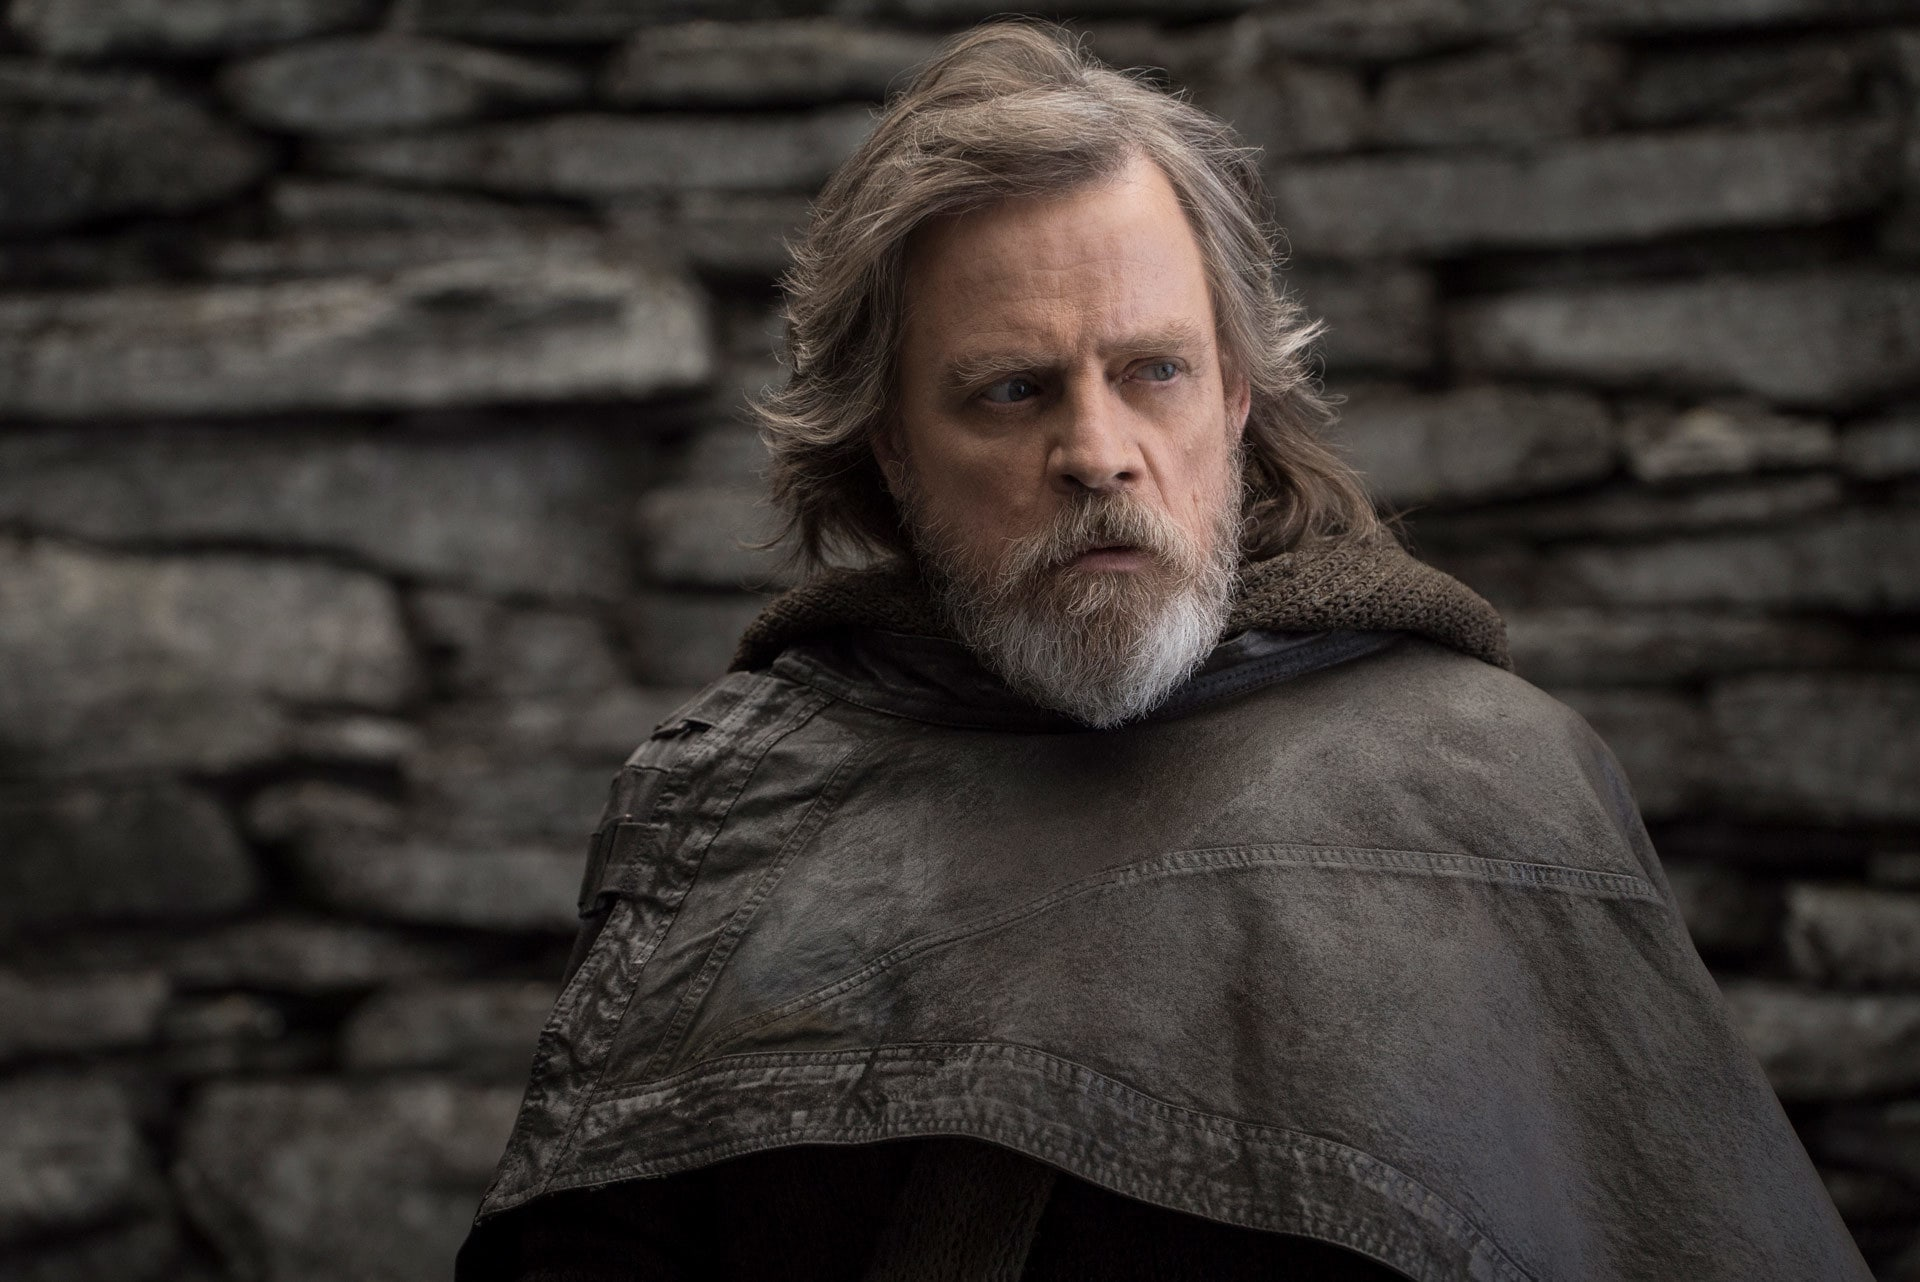 Star-Wars-the-Rise-of-Skywalker-Blogbericht-Luke-Skywalker-Disney-Lucasfilm